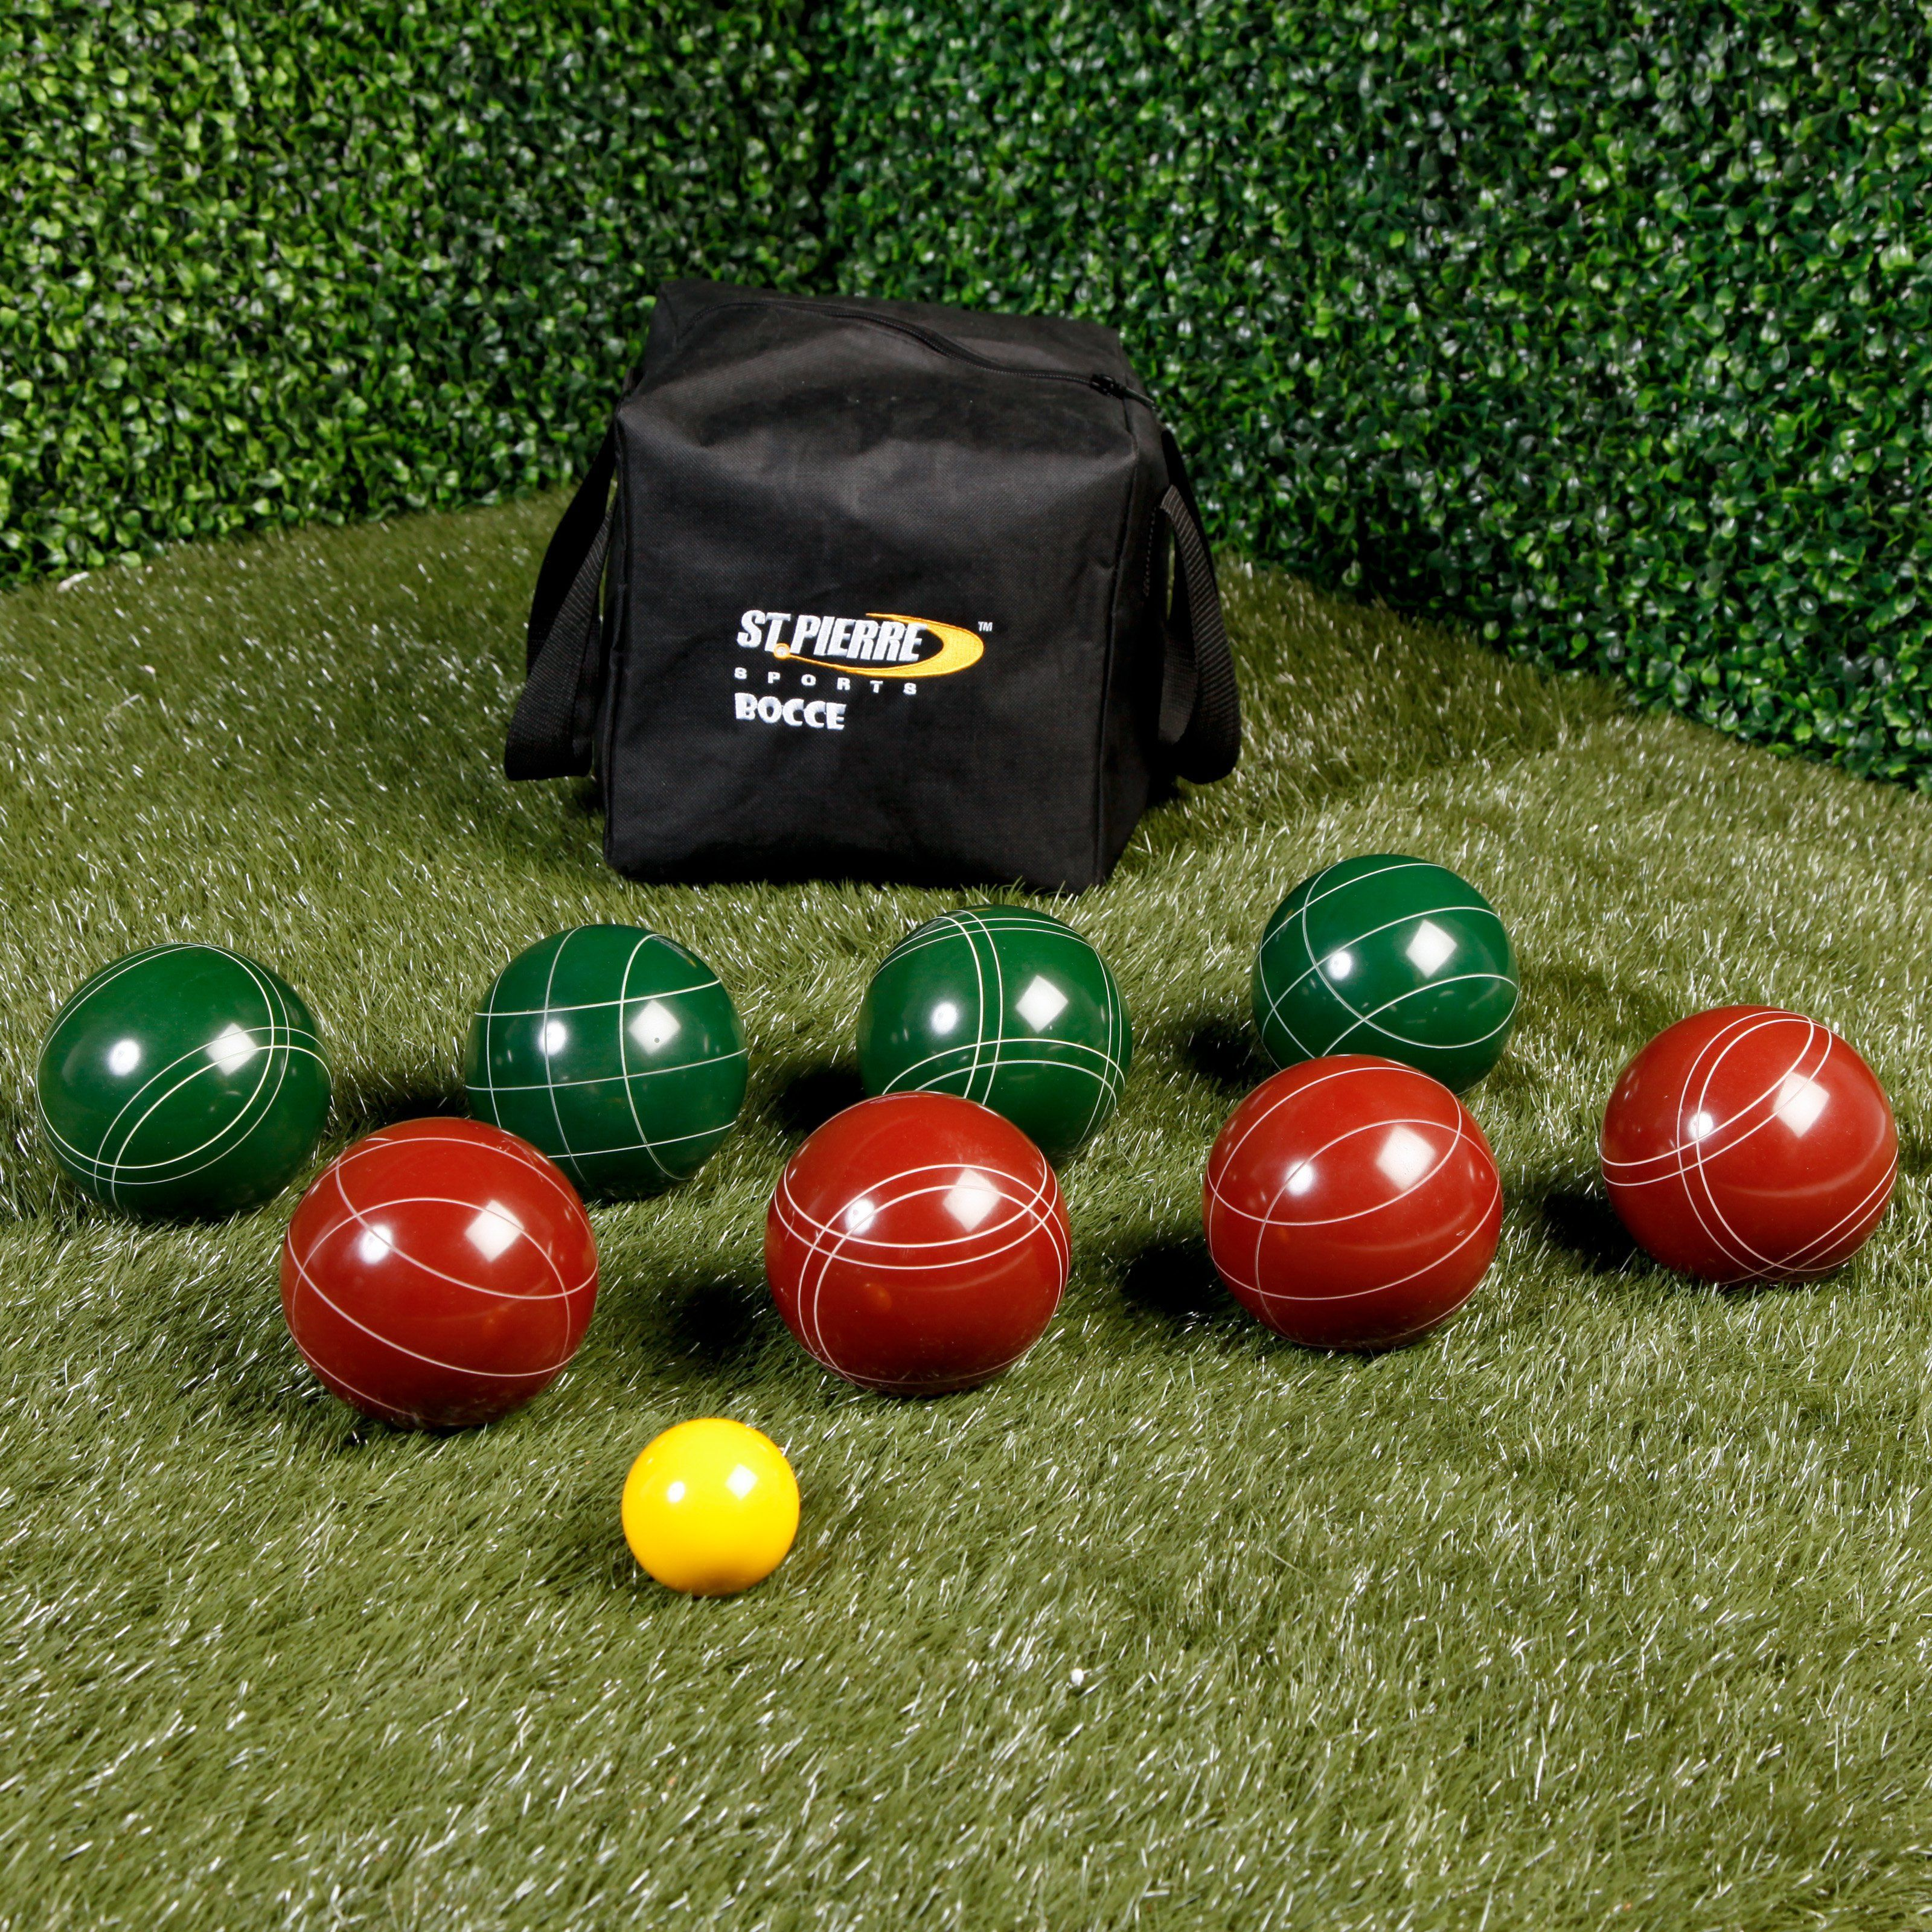 St. Pierre Official Tournament 107mm Bocce Set | from hayneedle.com   $99.99